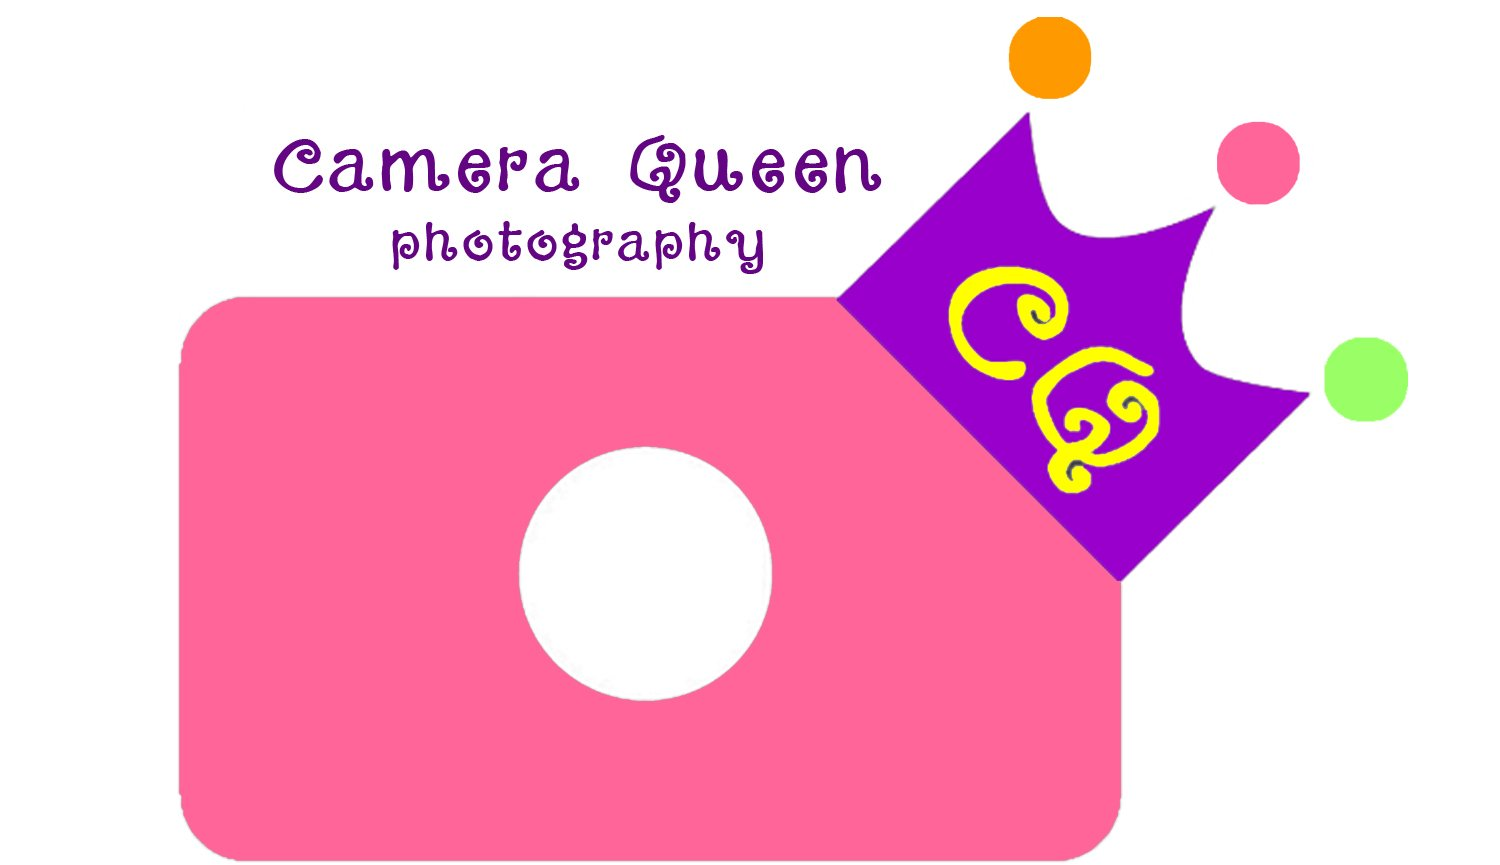 camera queen photography - portrait, modeling, head shot and fine